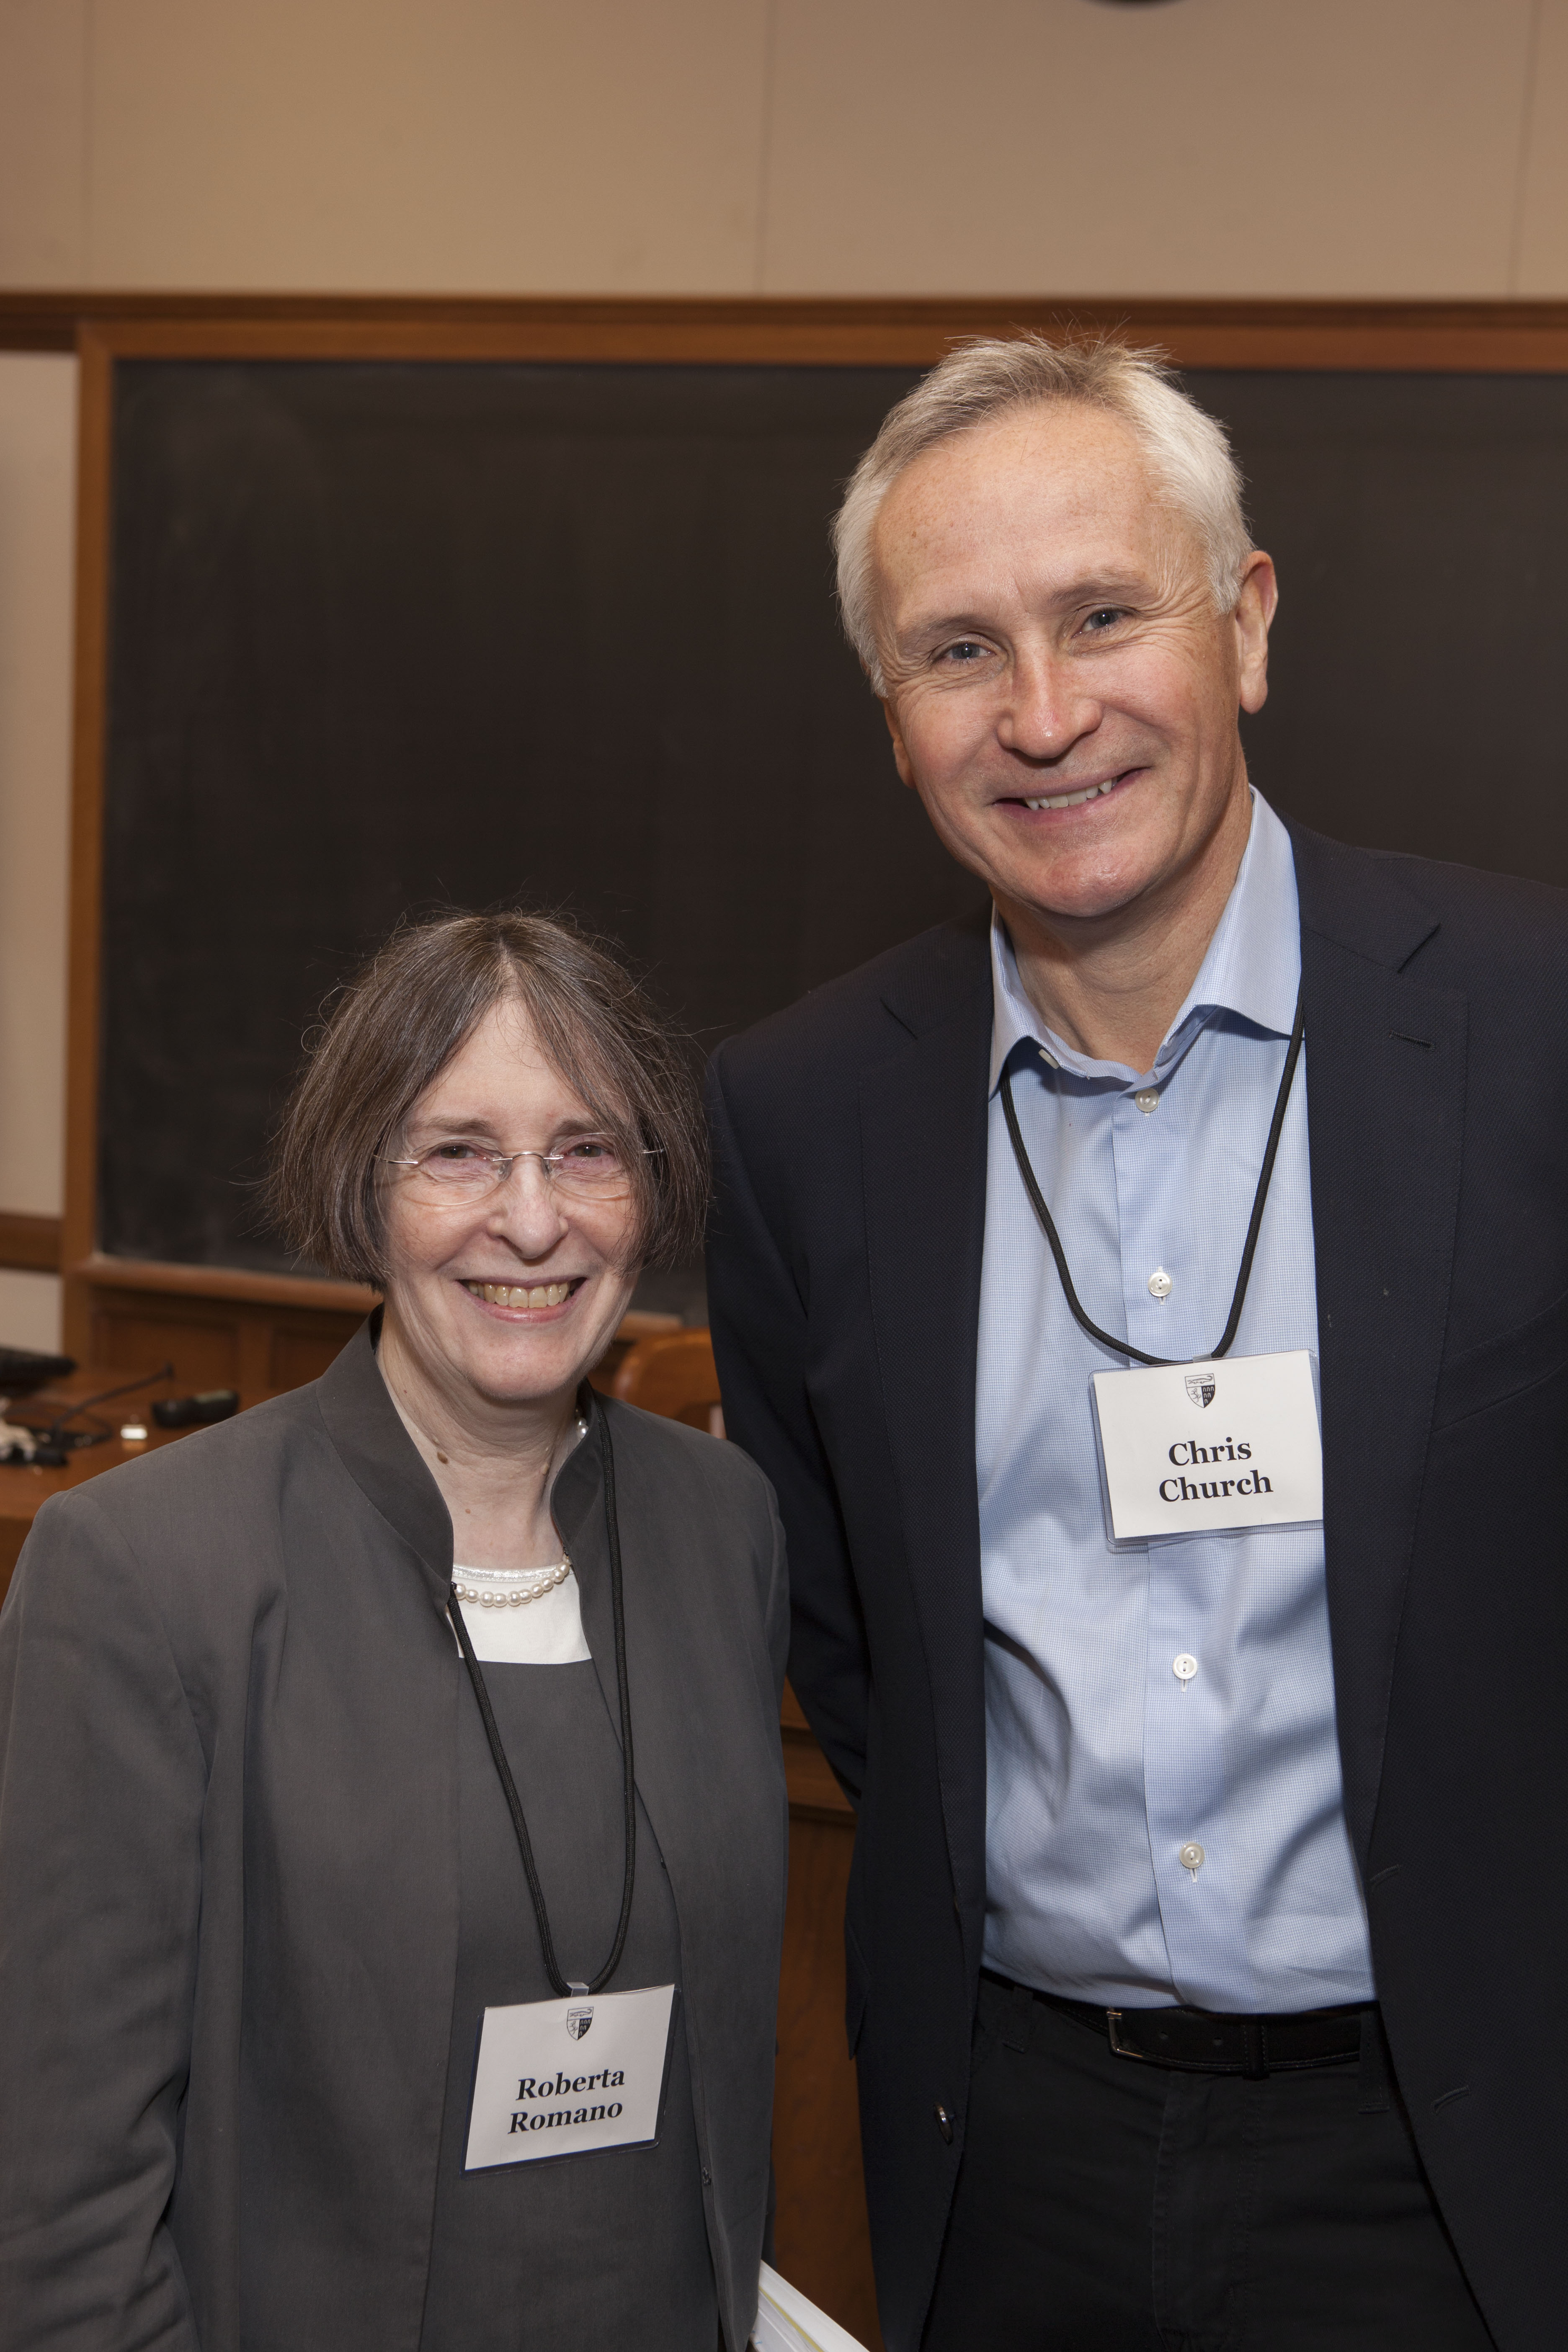 YLS Prof. and Center Dir. Roberta Romano '80 and Chris Church